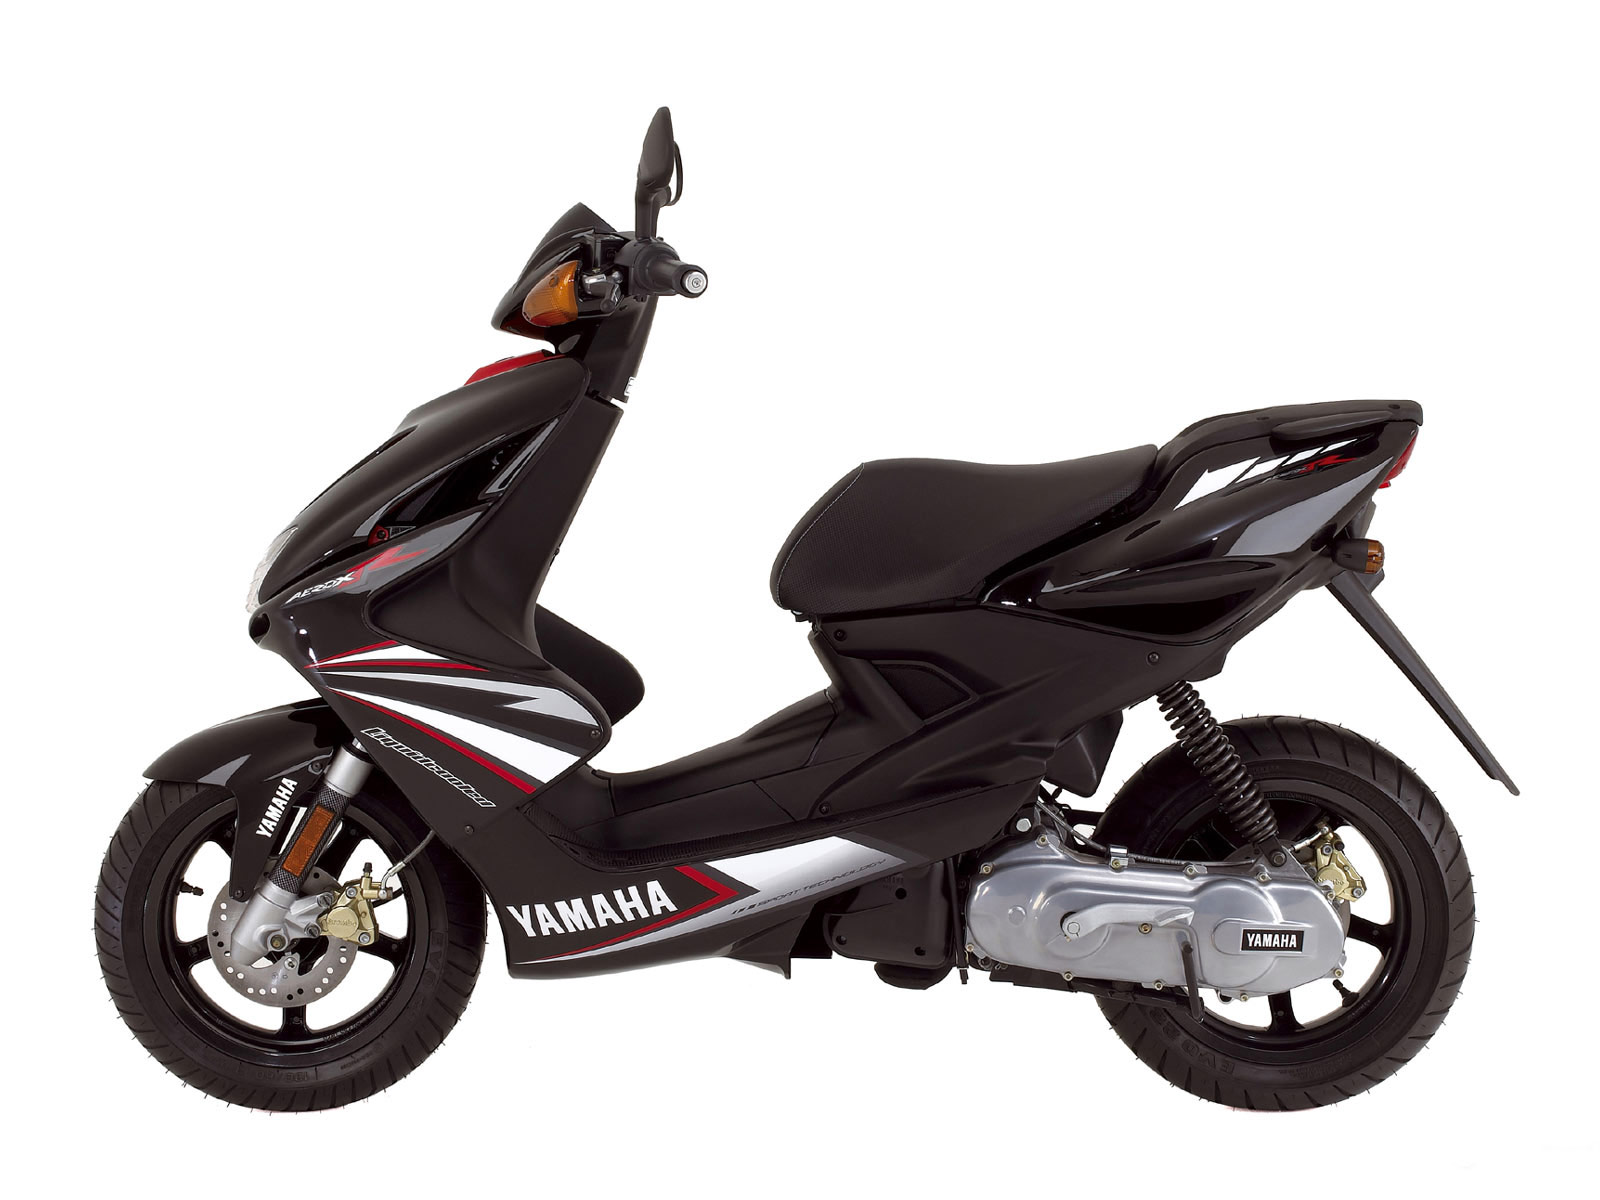 2007 yamaha aerox r scooter pictures specifications. Black Bedroom Furniture Sets. Home Design Ideas